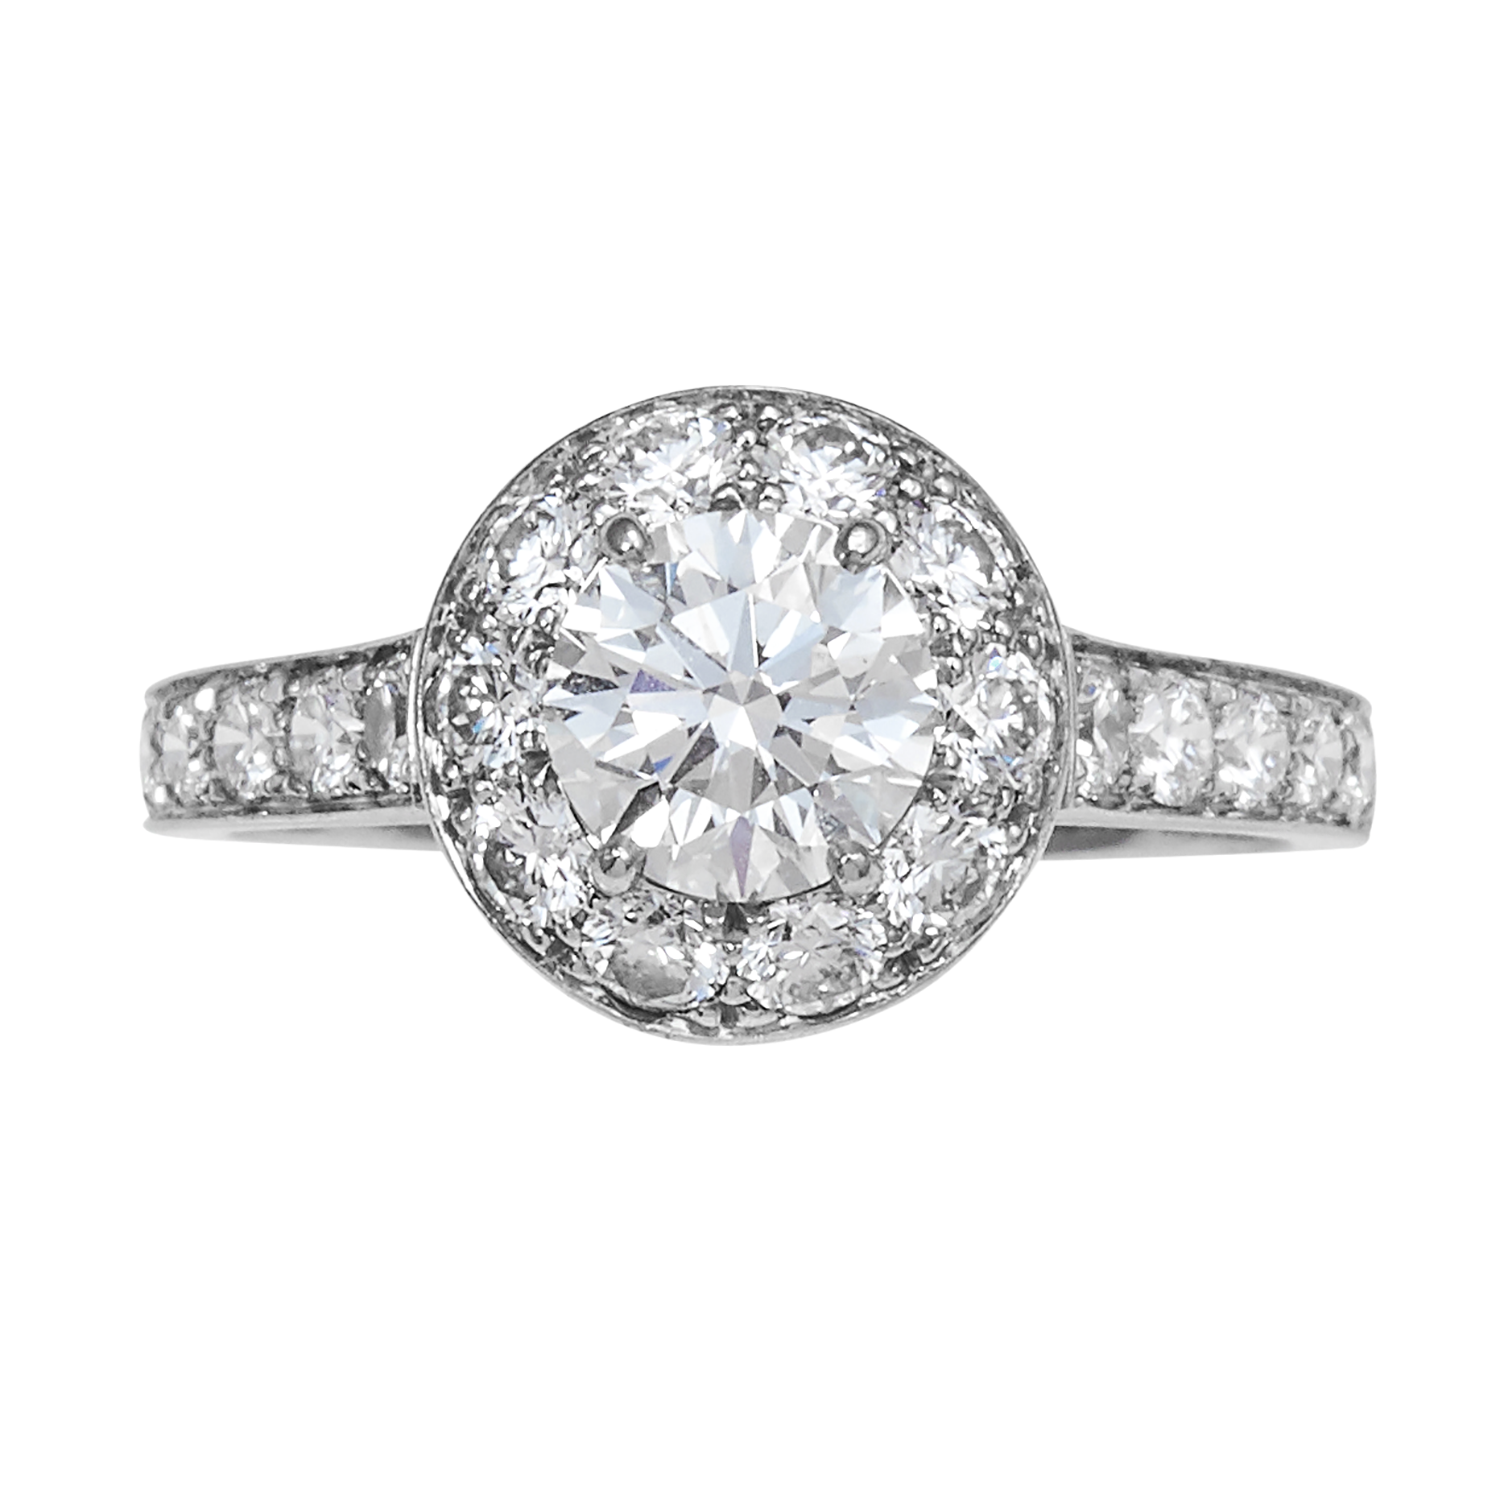 Los 53 - AN ICONE 1.0 CARAT DIAMOND ENGAGEMENT RING, VAN CLEEF & ARPELS in platinum, set with a central round